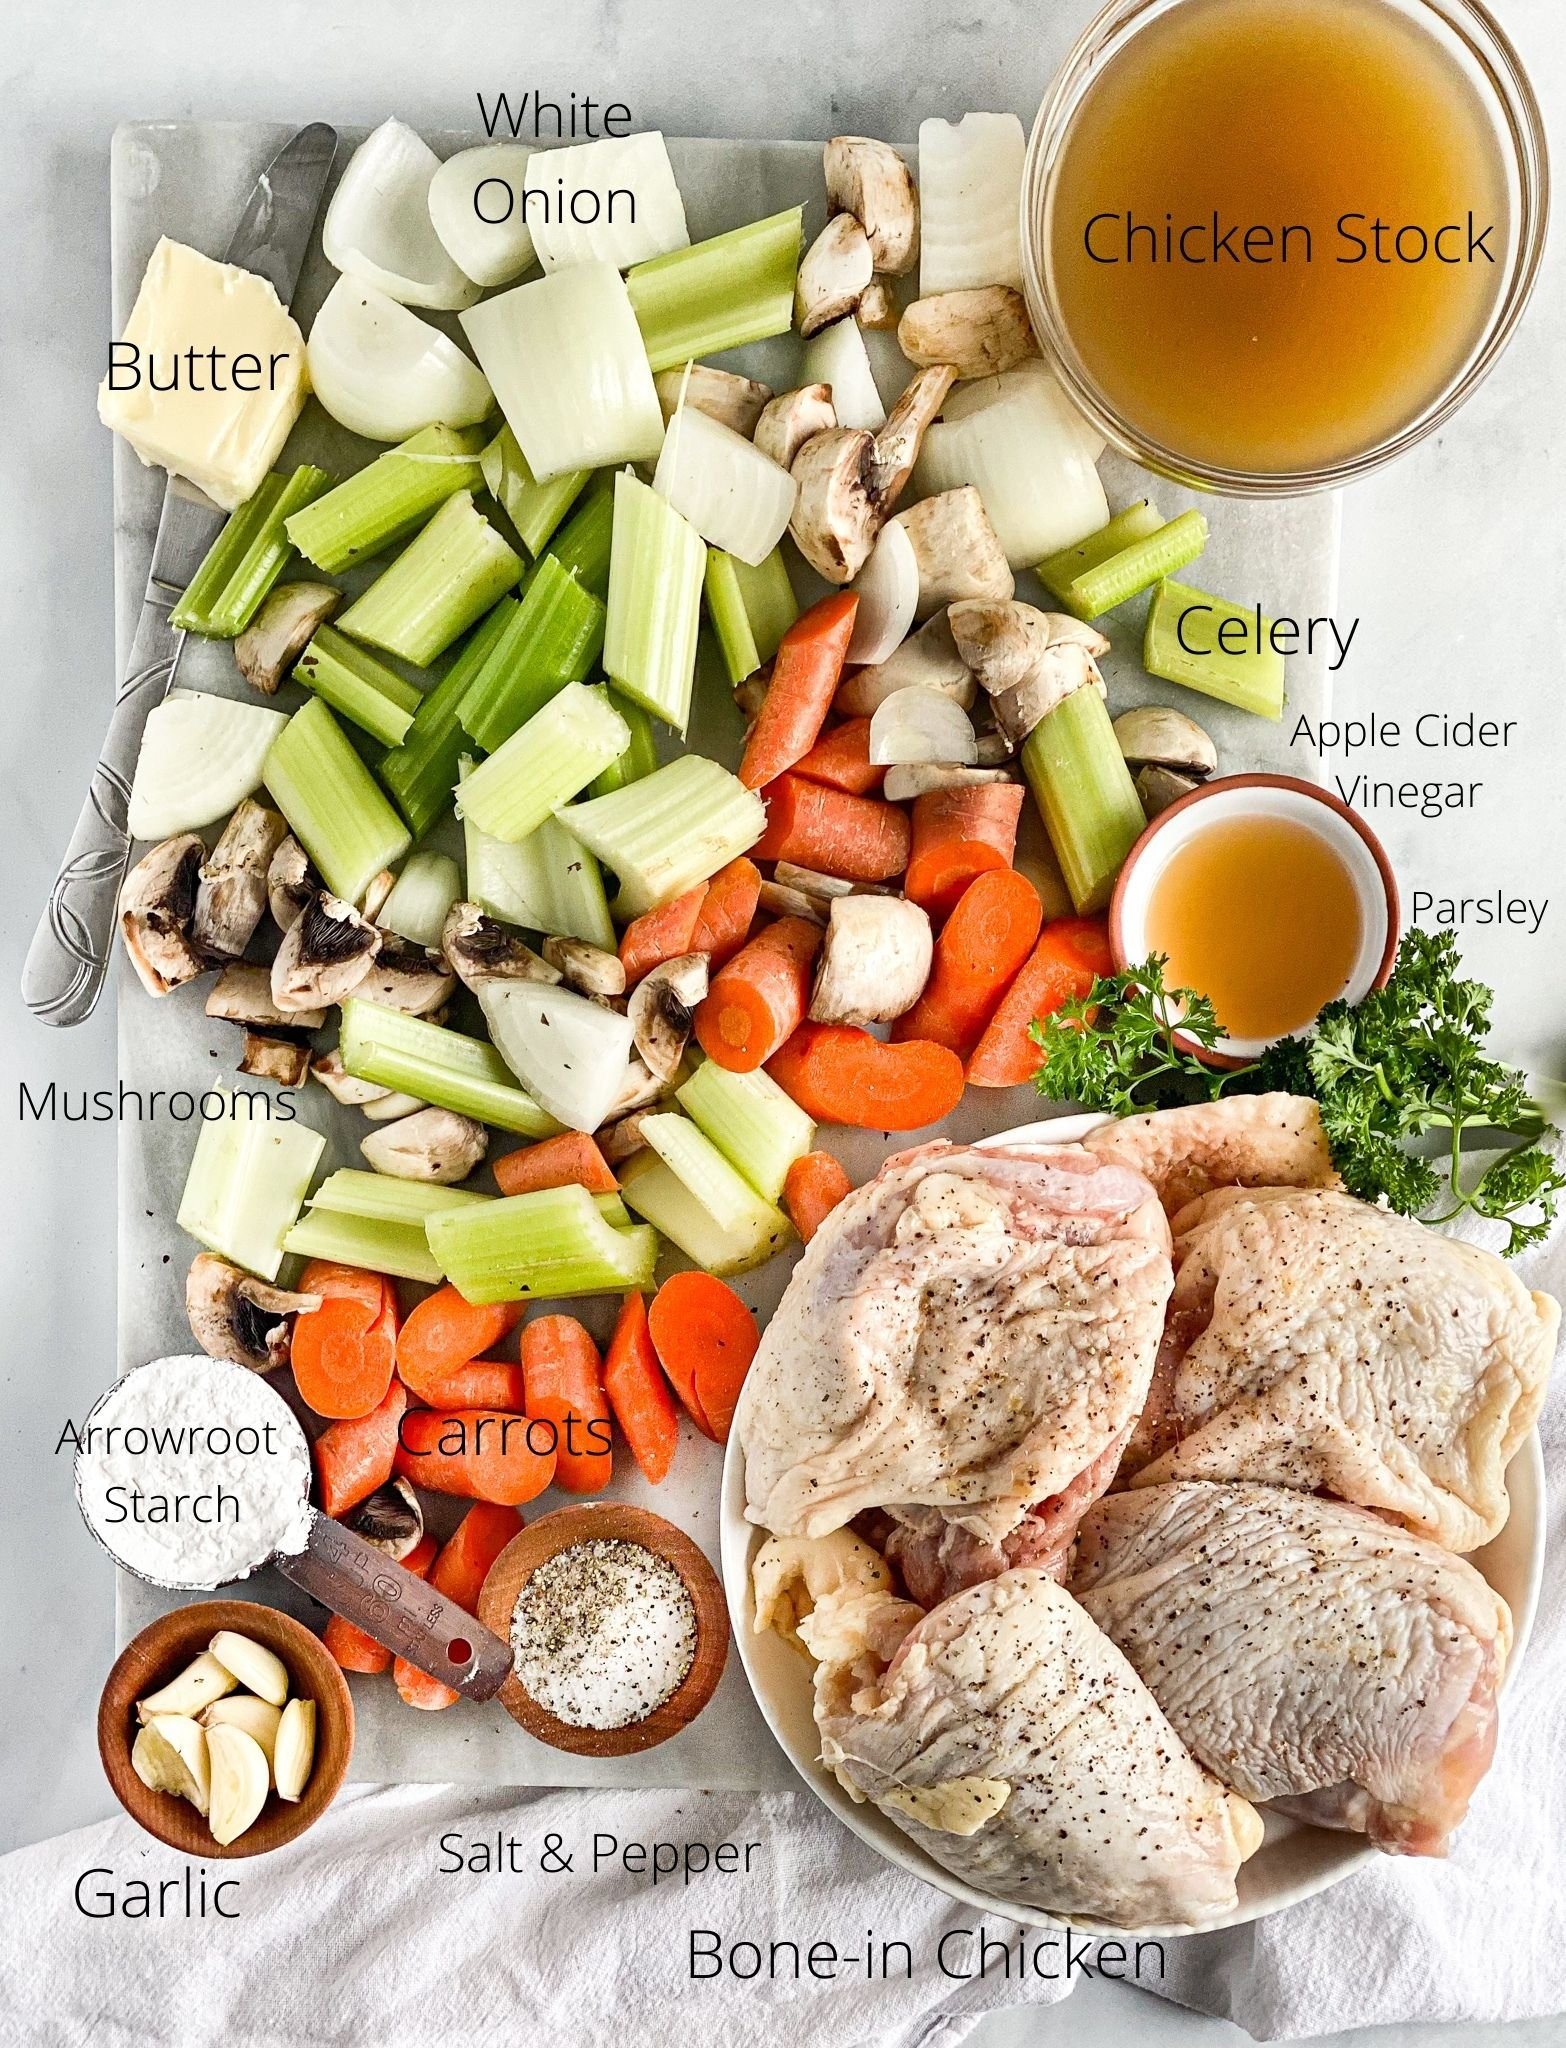 Ingredients for rustic braised chicken ready to be cooked laying on a marble cutting board which includes the following, onion, carrots, celery, mushrooms, garlic, butter, chicken stock, apple cider vinegar, butter, arrowroot, parsley salt and pepper and the bone-in chicken thighs.